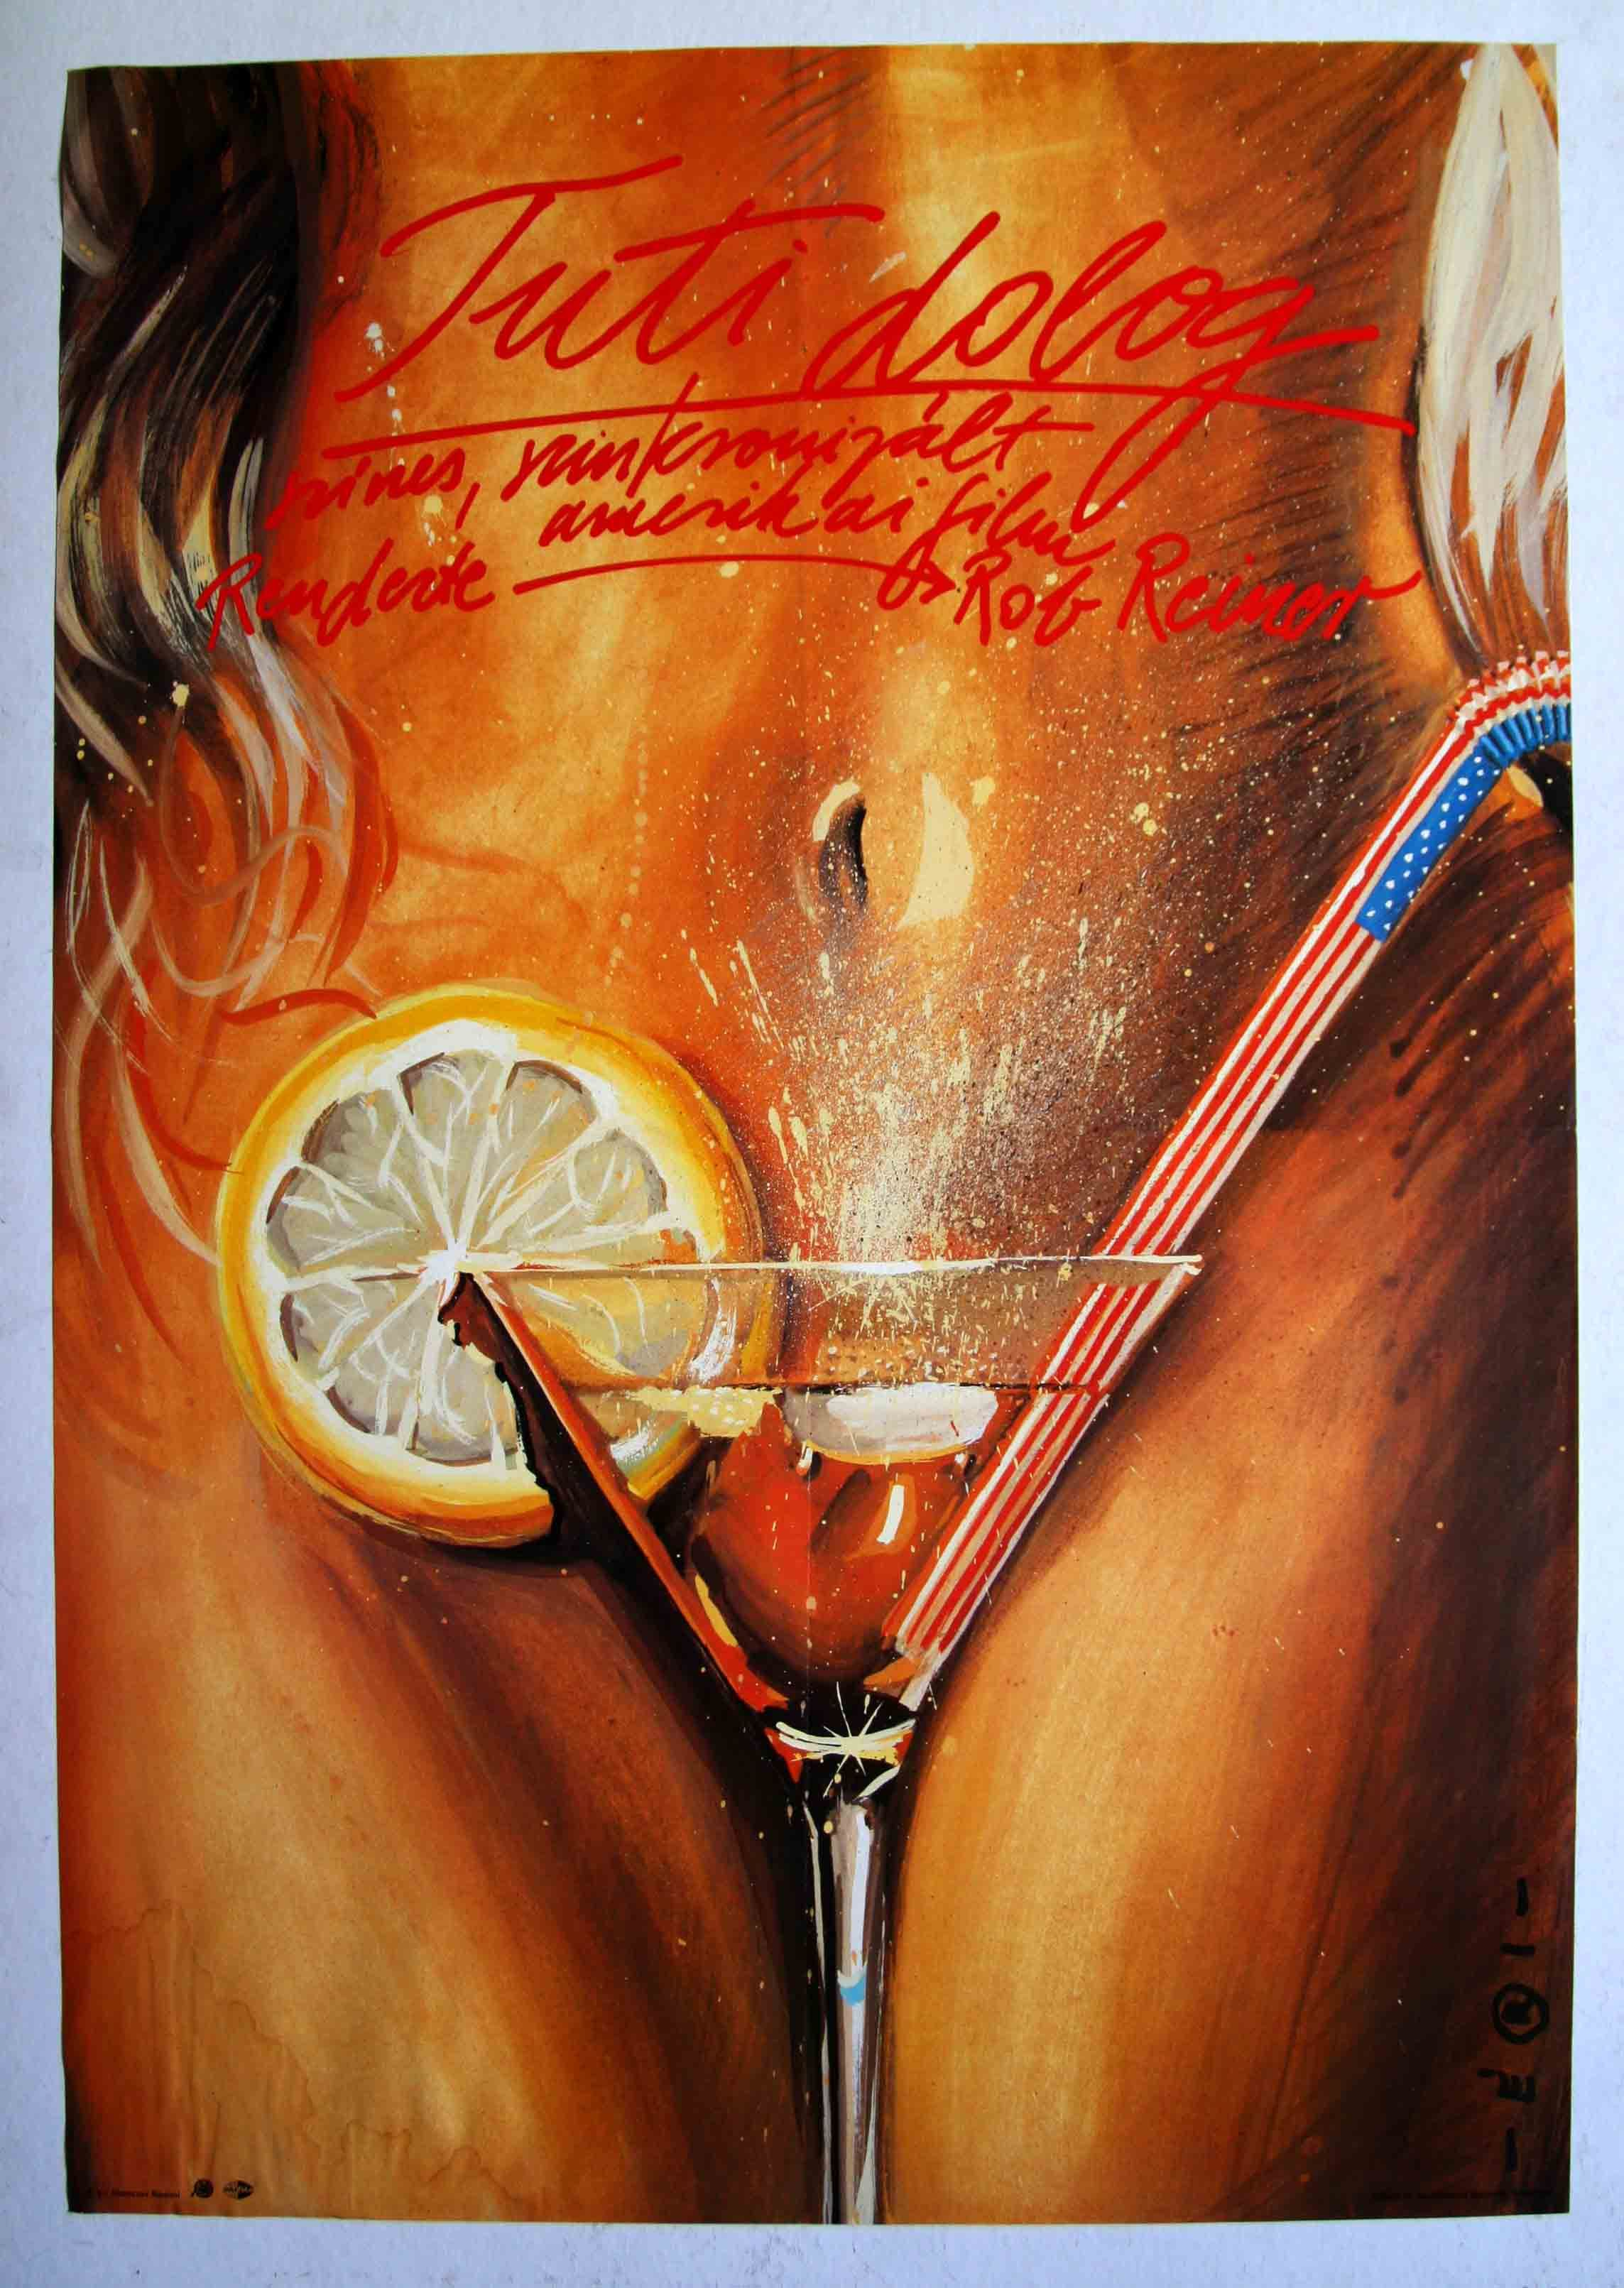 "Tuti dolog (1985)""The Sure Thing""  Director: Rob Reiner  Hungarian vintage movie poster Artist by:Éri Jenő Tamás"